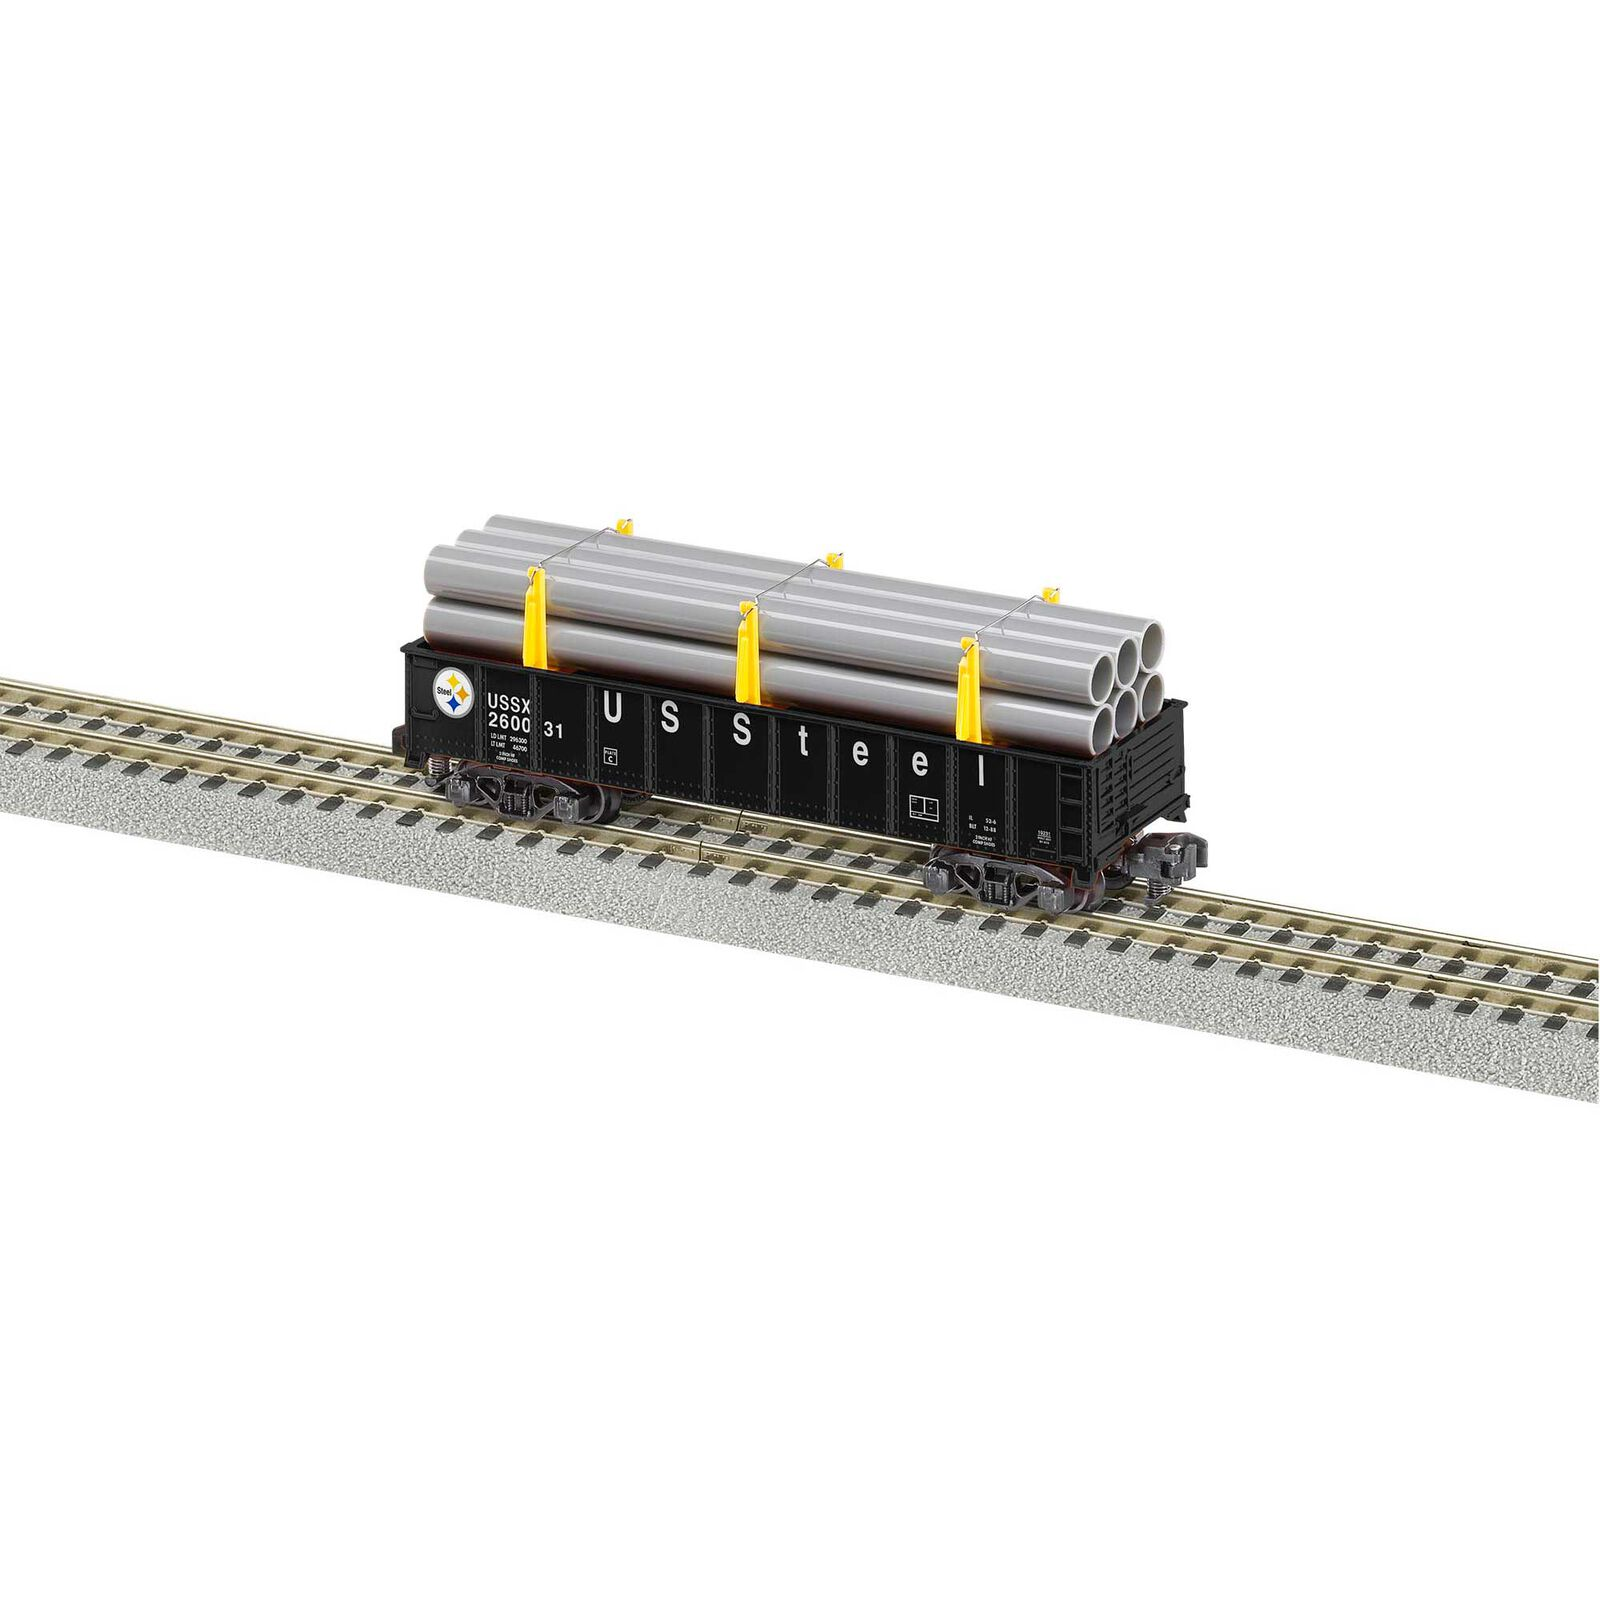 S Gondola with Pipe Load USSTL #260031